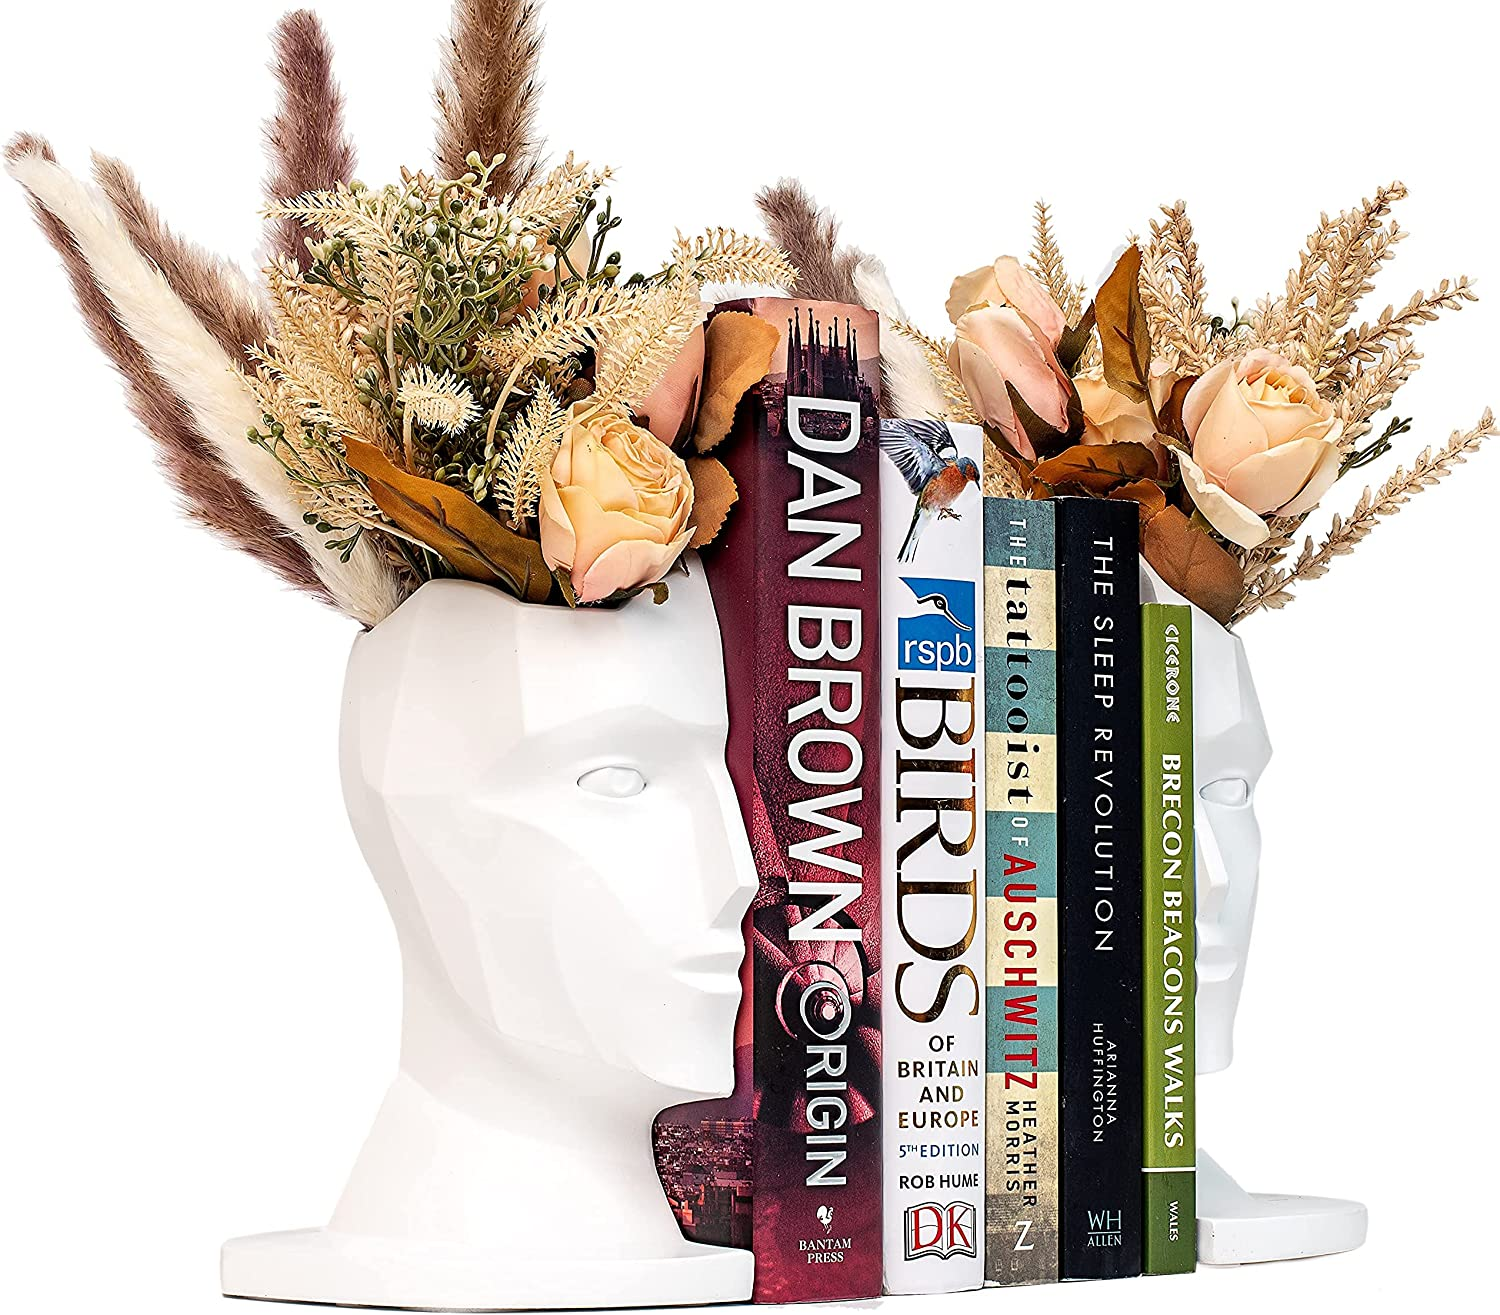 Head Statue Planter / Bookends Decor - 8 inch - Indoor Plant Pot for Living Rooms Shelves - Modern Home Office Bookshelf Organiser & Book Lovers Gifts (White)